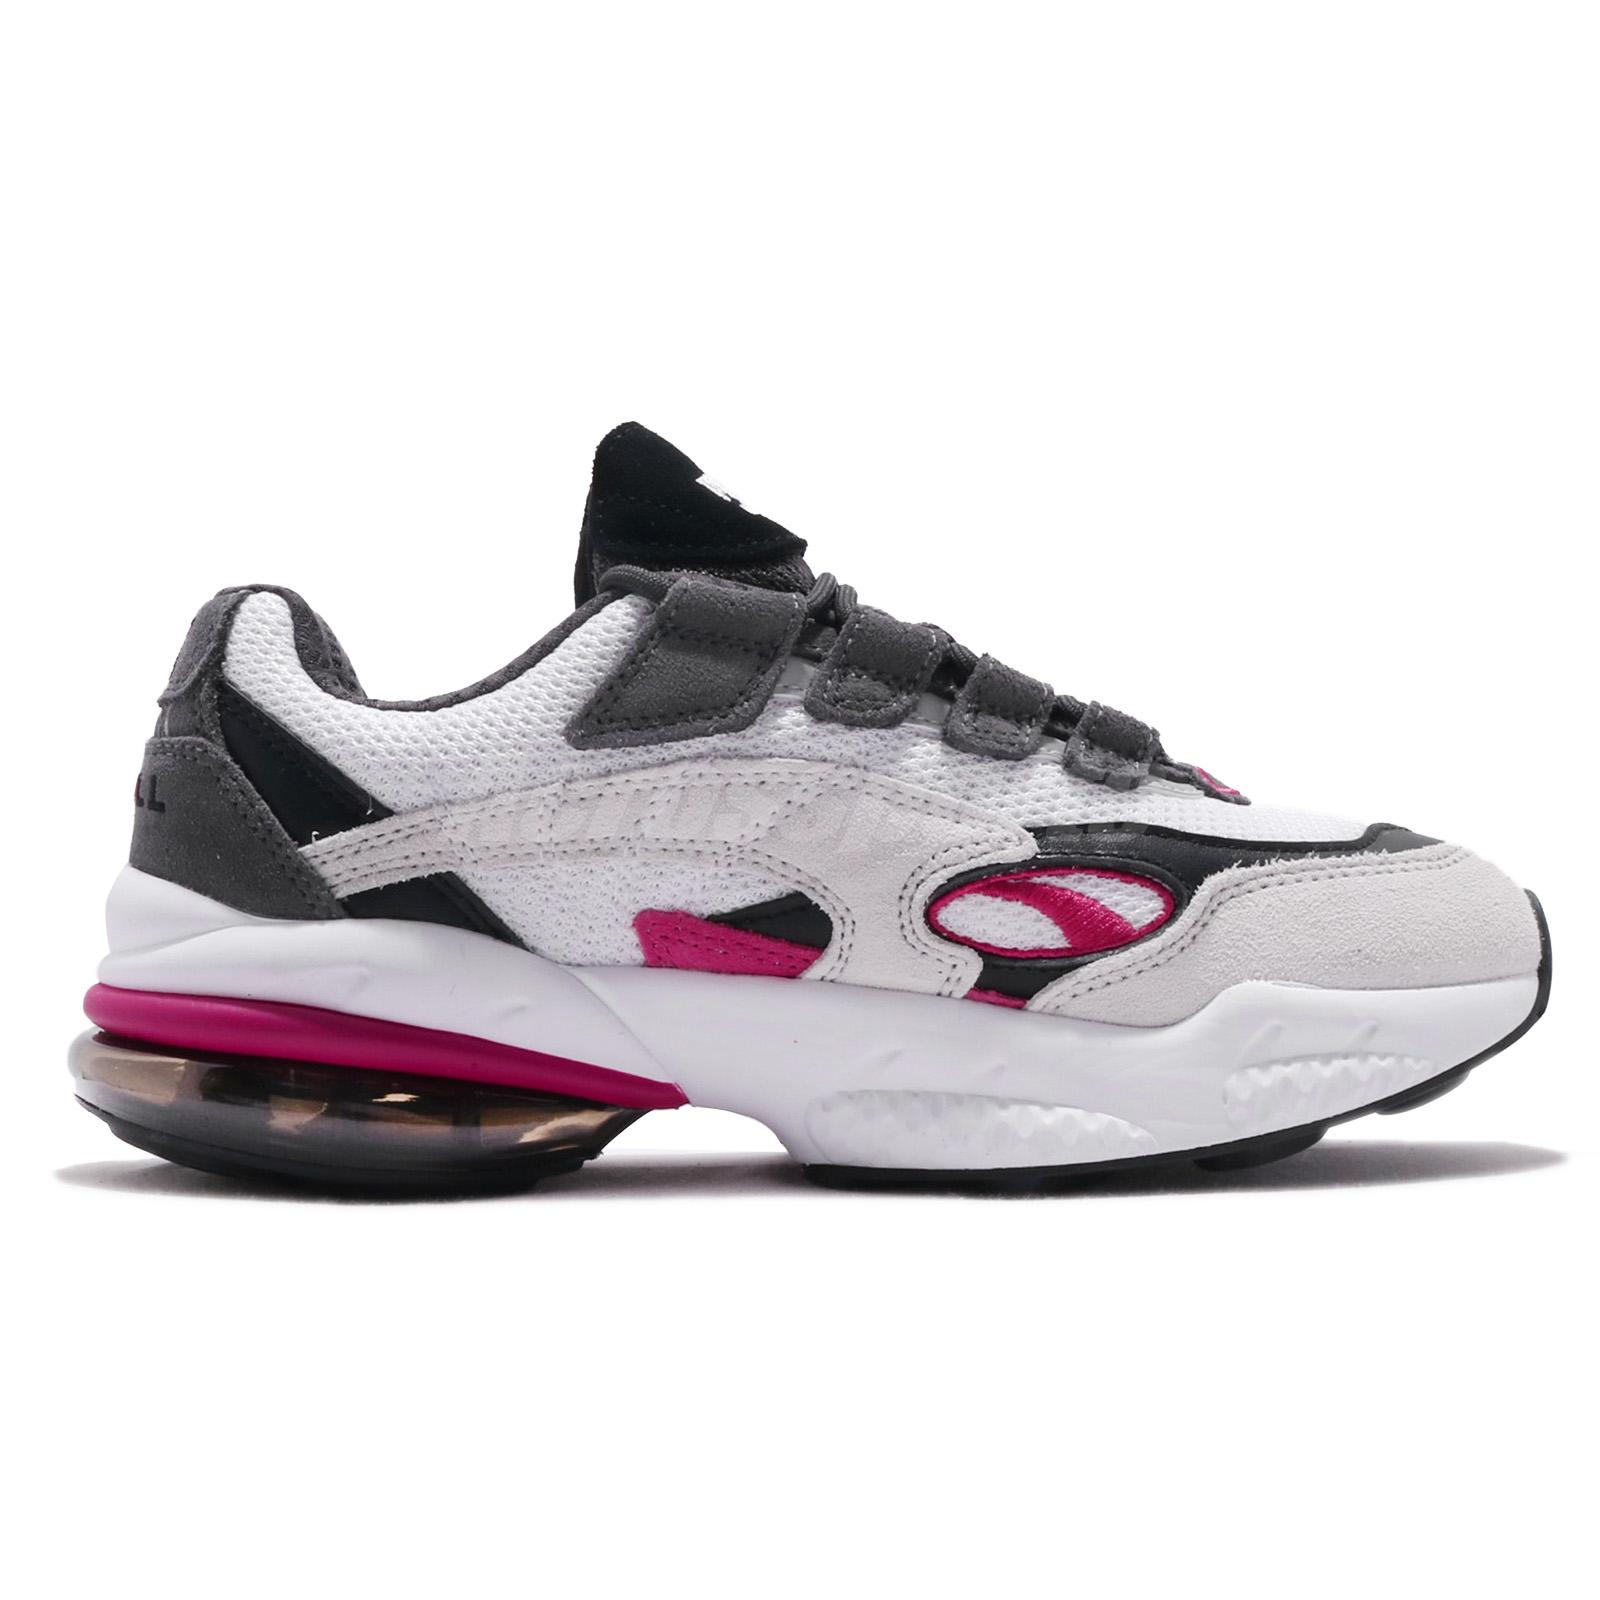 Details about Puma Cell Venom White Fuchsia Purple Black Men Running Shoes  Sneakers 369354-08